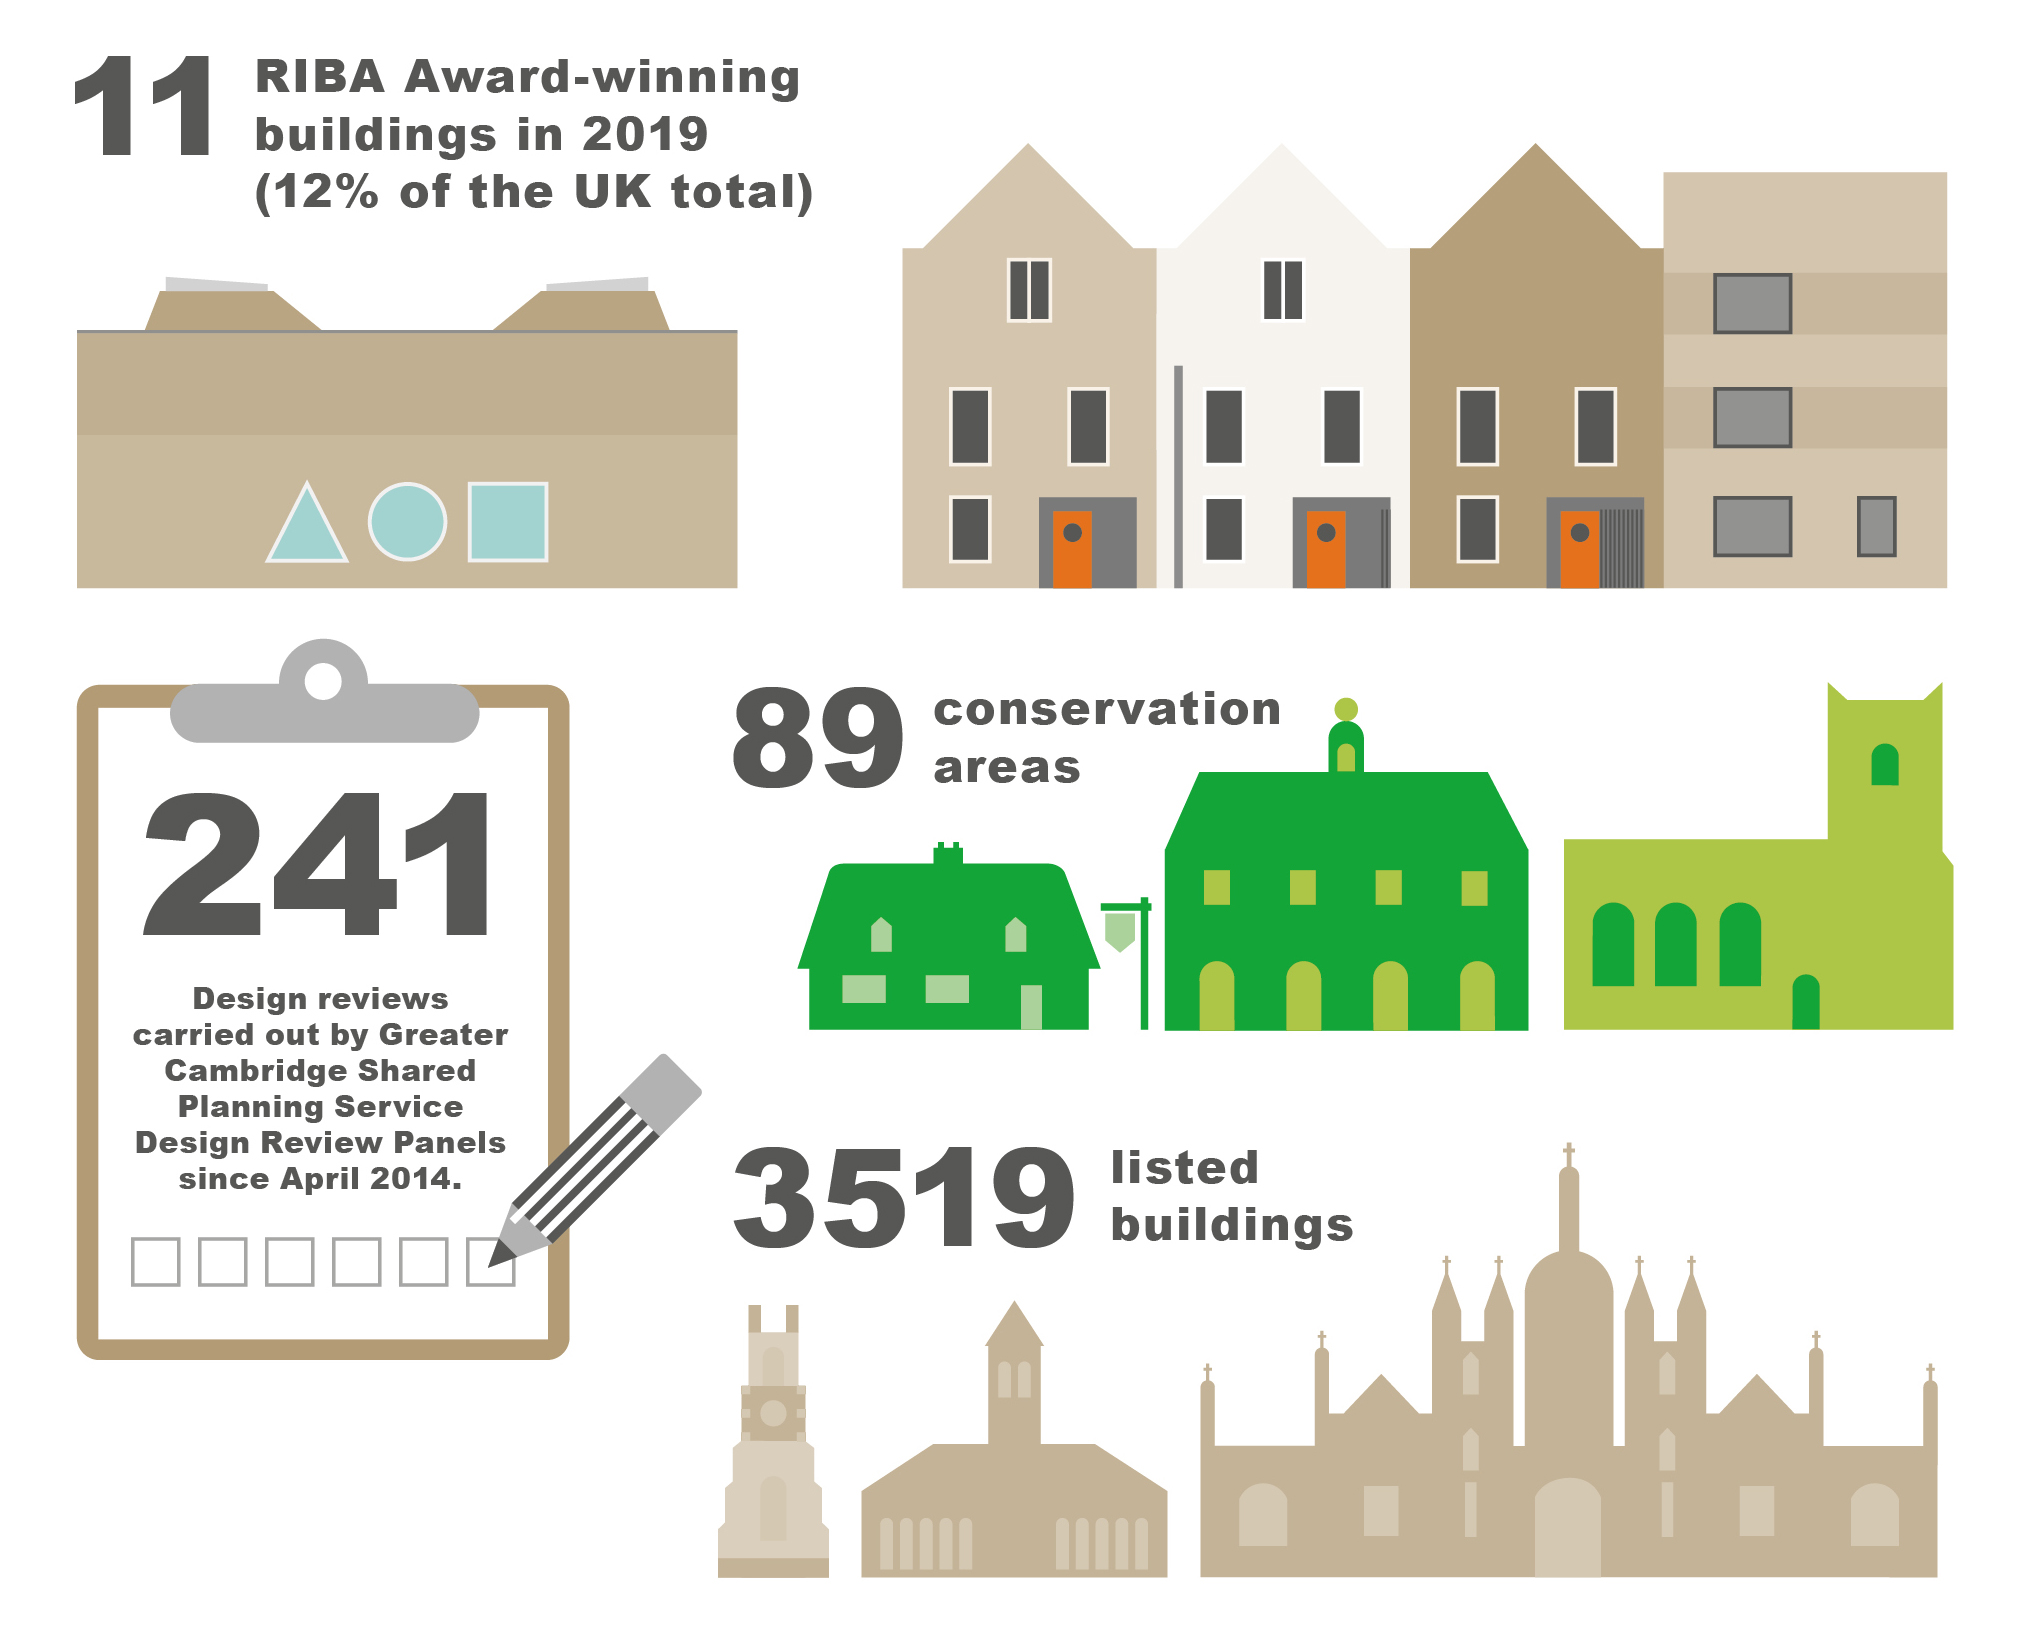 Infographic showing that Greater Cambridge has 3519 Listed Buildings, 89   Conservation Areas,   11 RIBA Award-winning projects in 2019 which is 12% of the UK total, and that the     Greater Cambridge Shared Planning Service Design Review Panels have carried out 241 design reviews since April 2014.